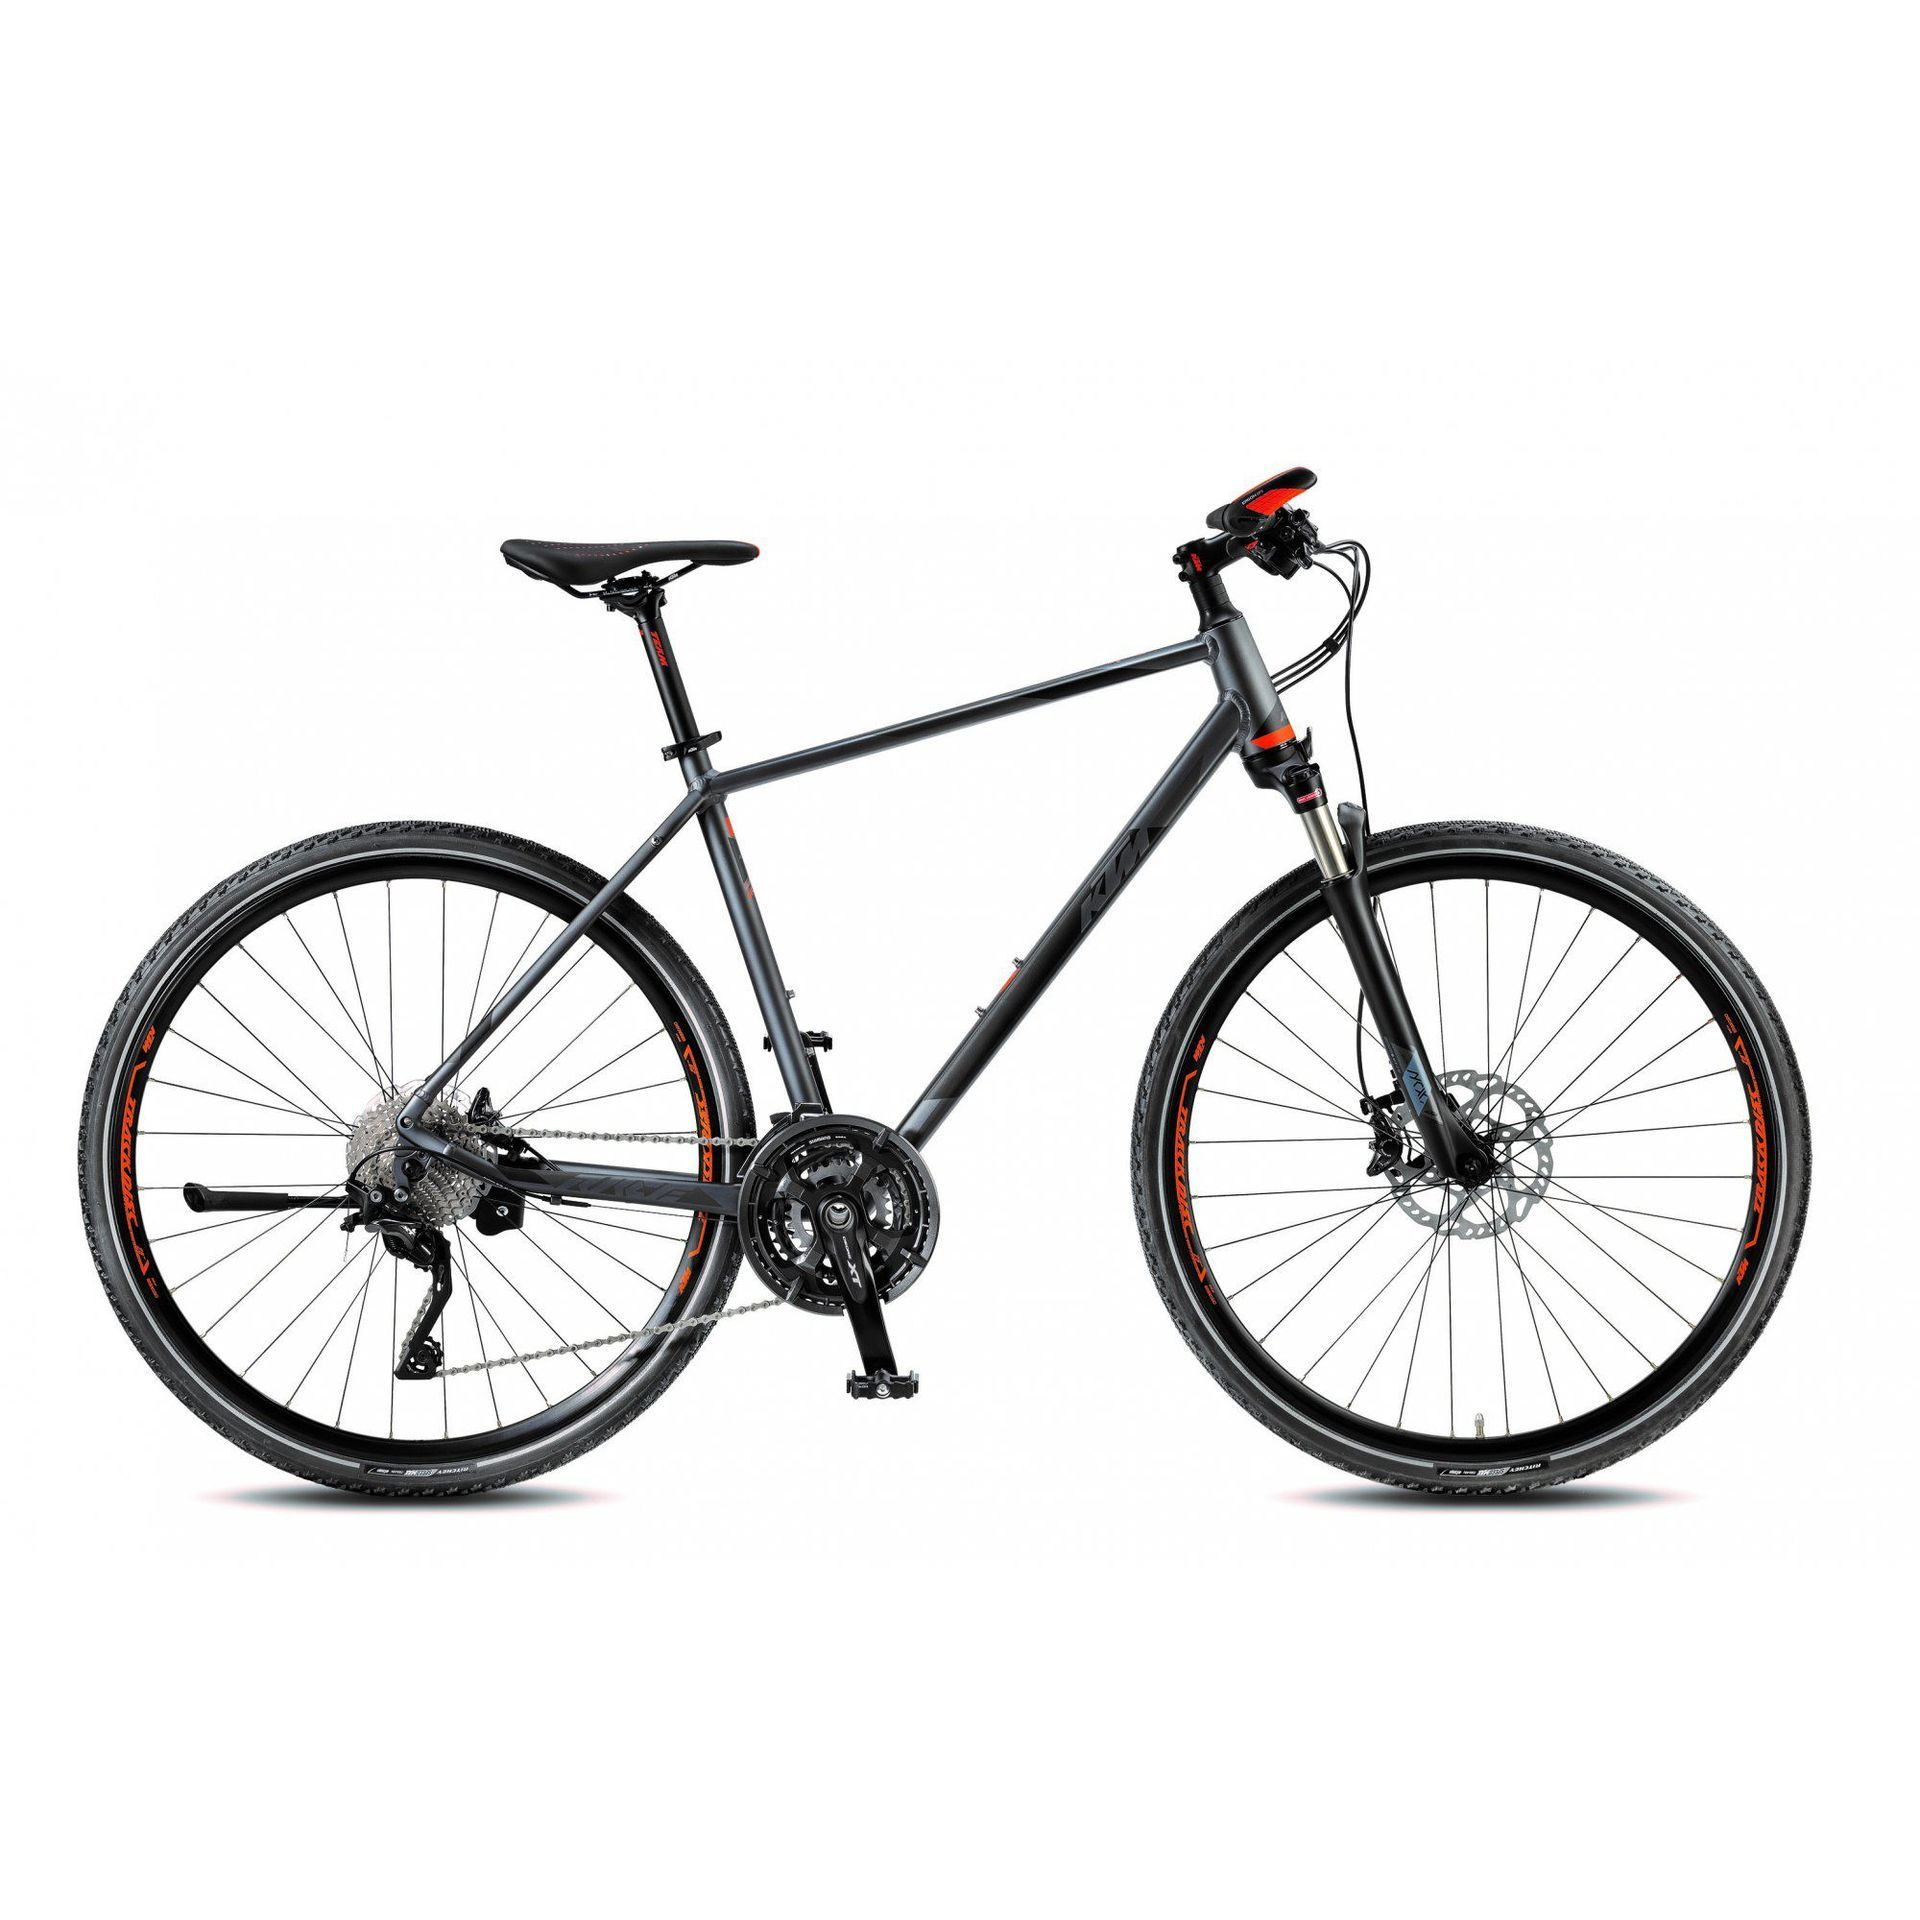 ROWER KTM LEGARDA RACE HE STEELGREY|BLACK|ORANGE